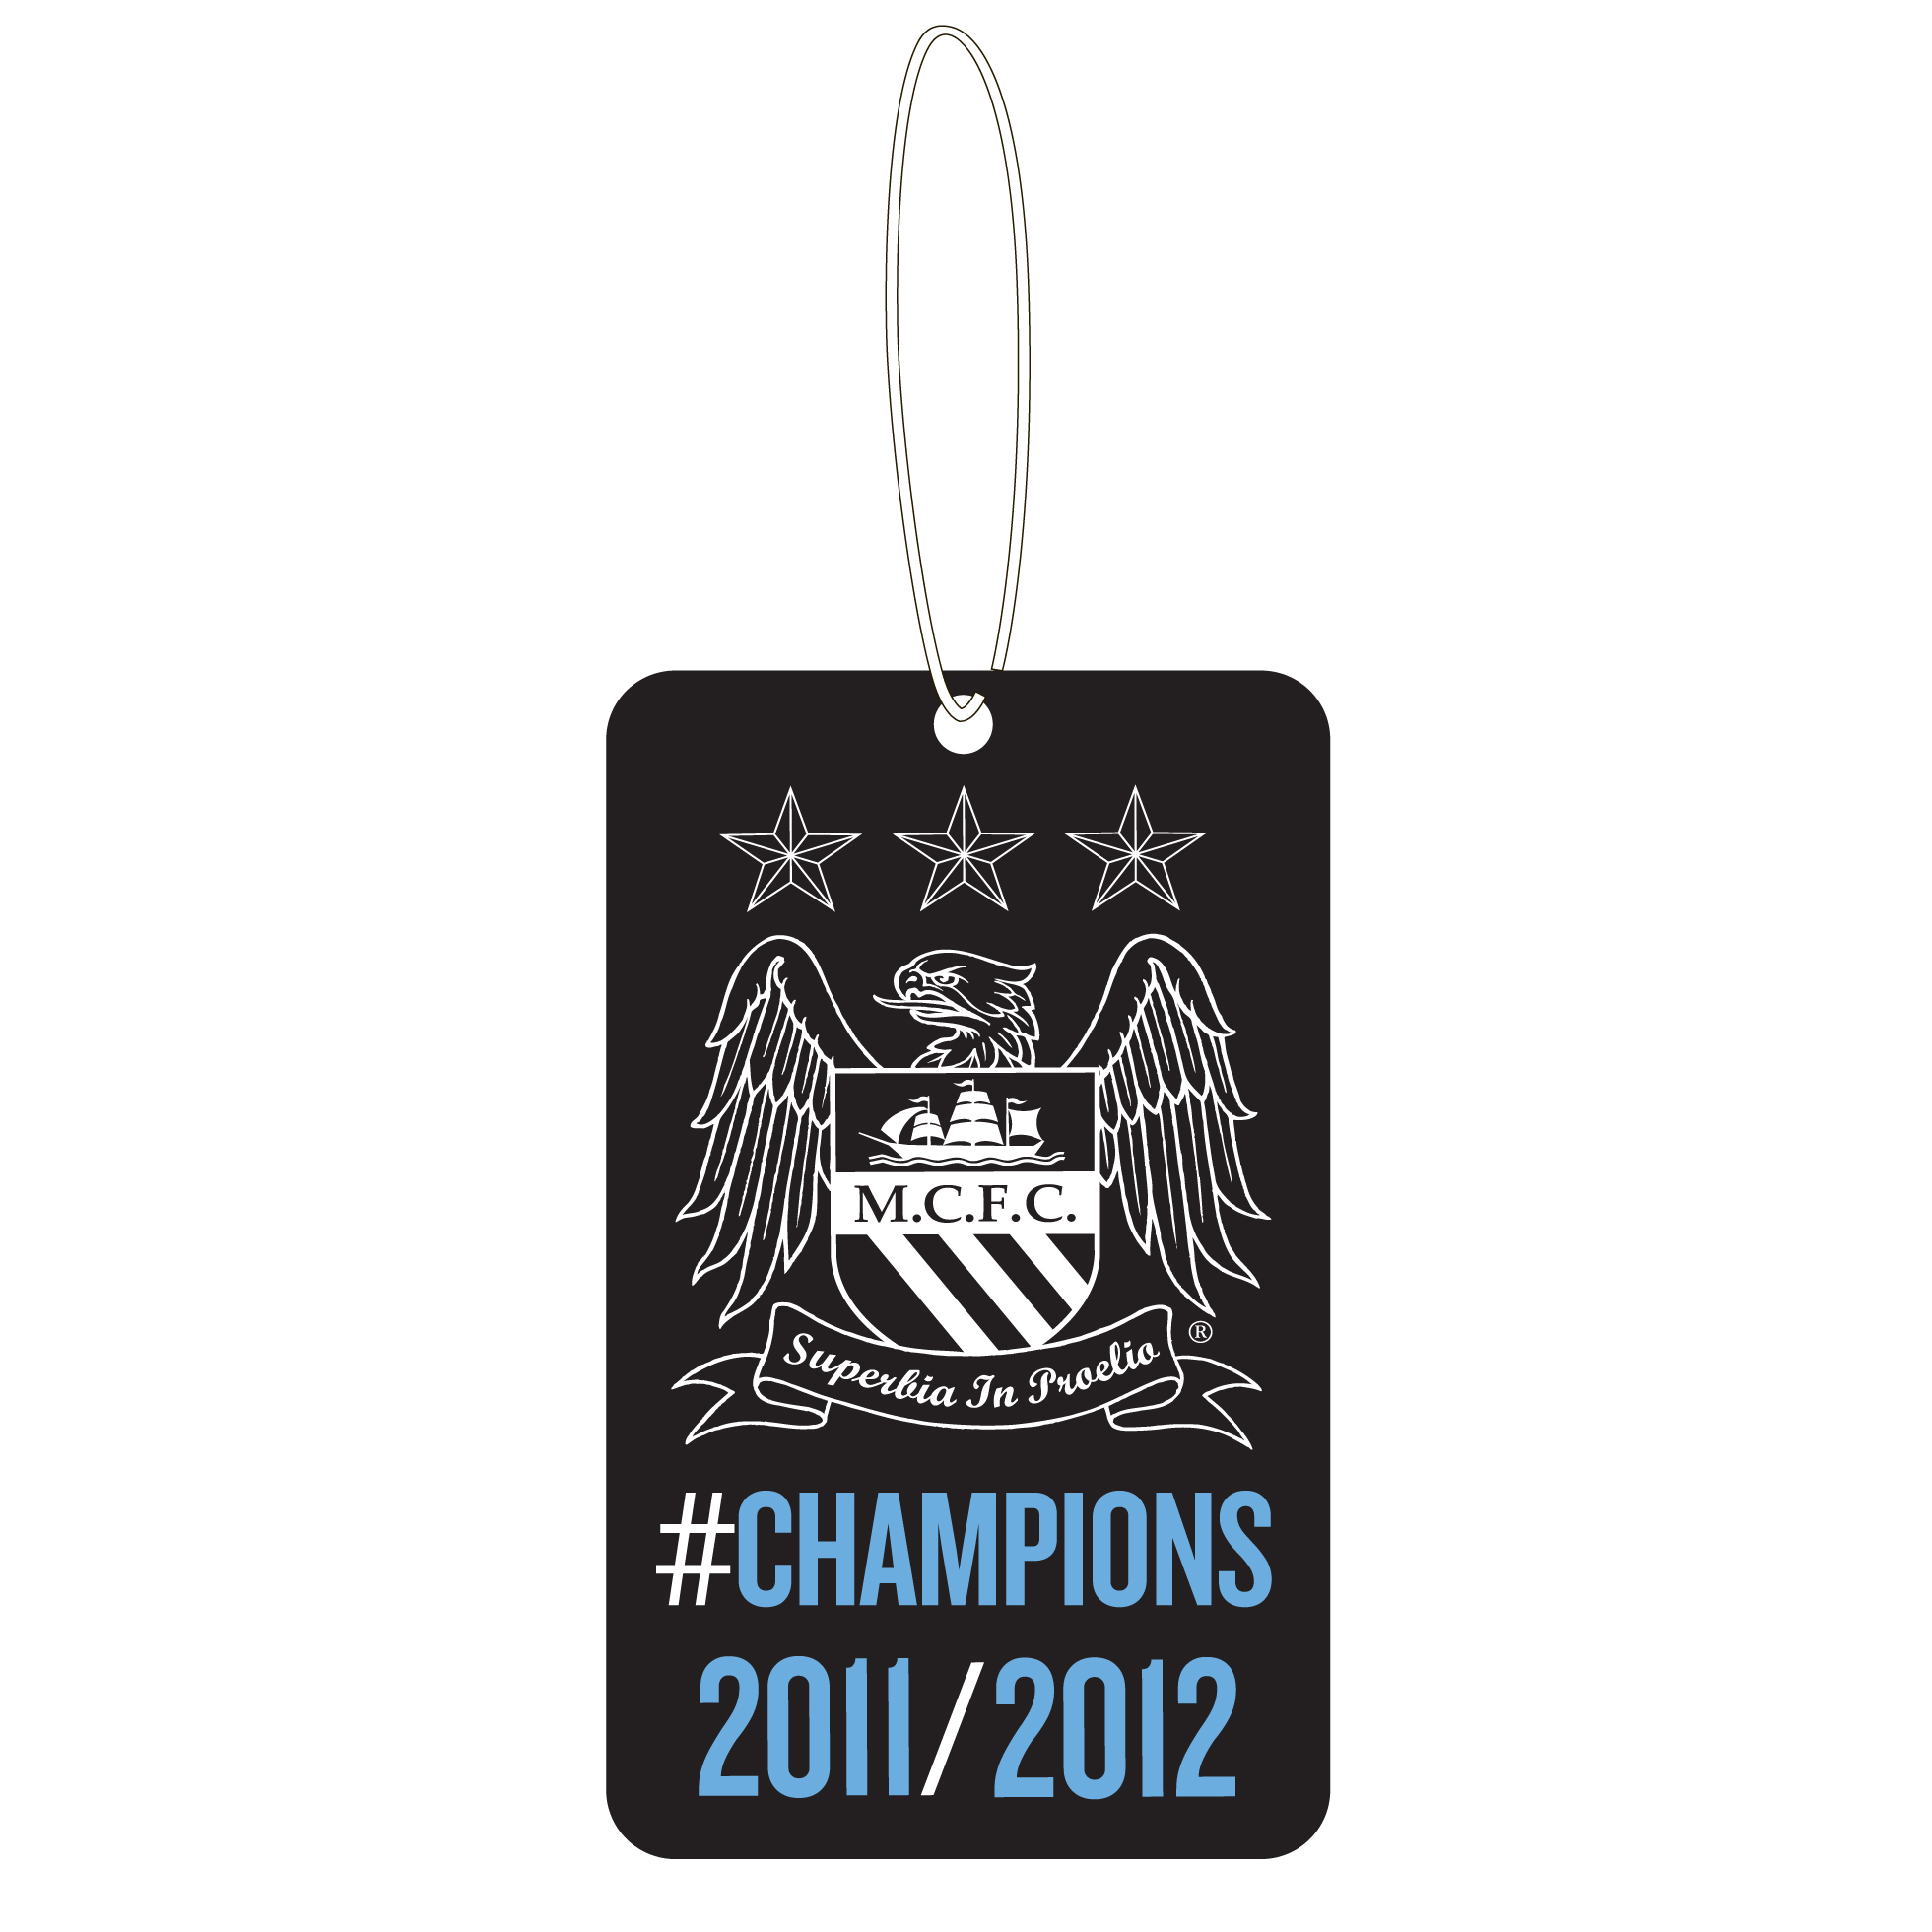 Manchester City #Champions 11/12 Air Freshener